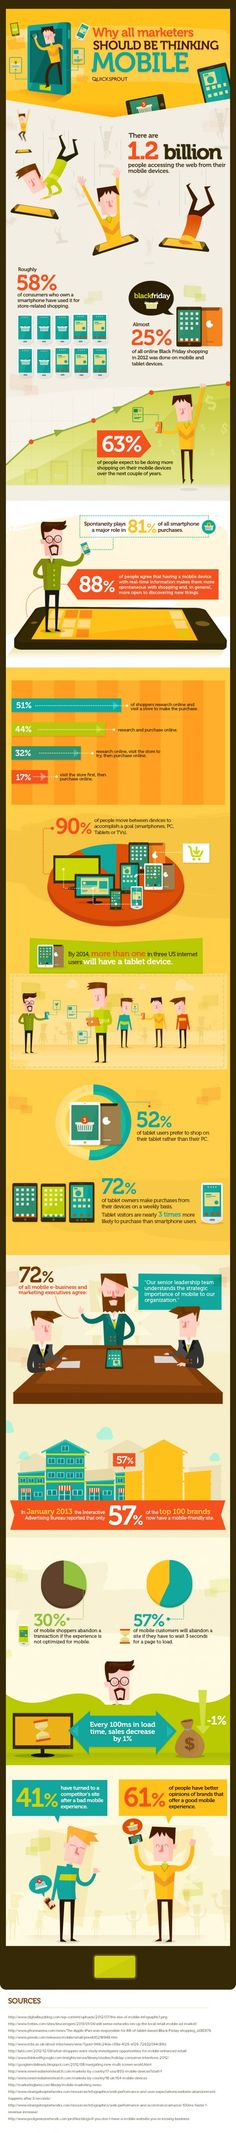 Why All Marketers Should Be Thinking #Mobile #infographic